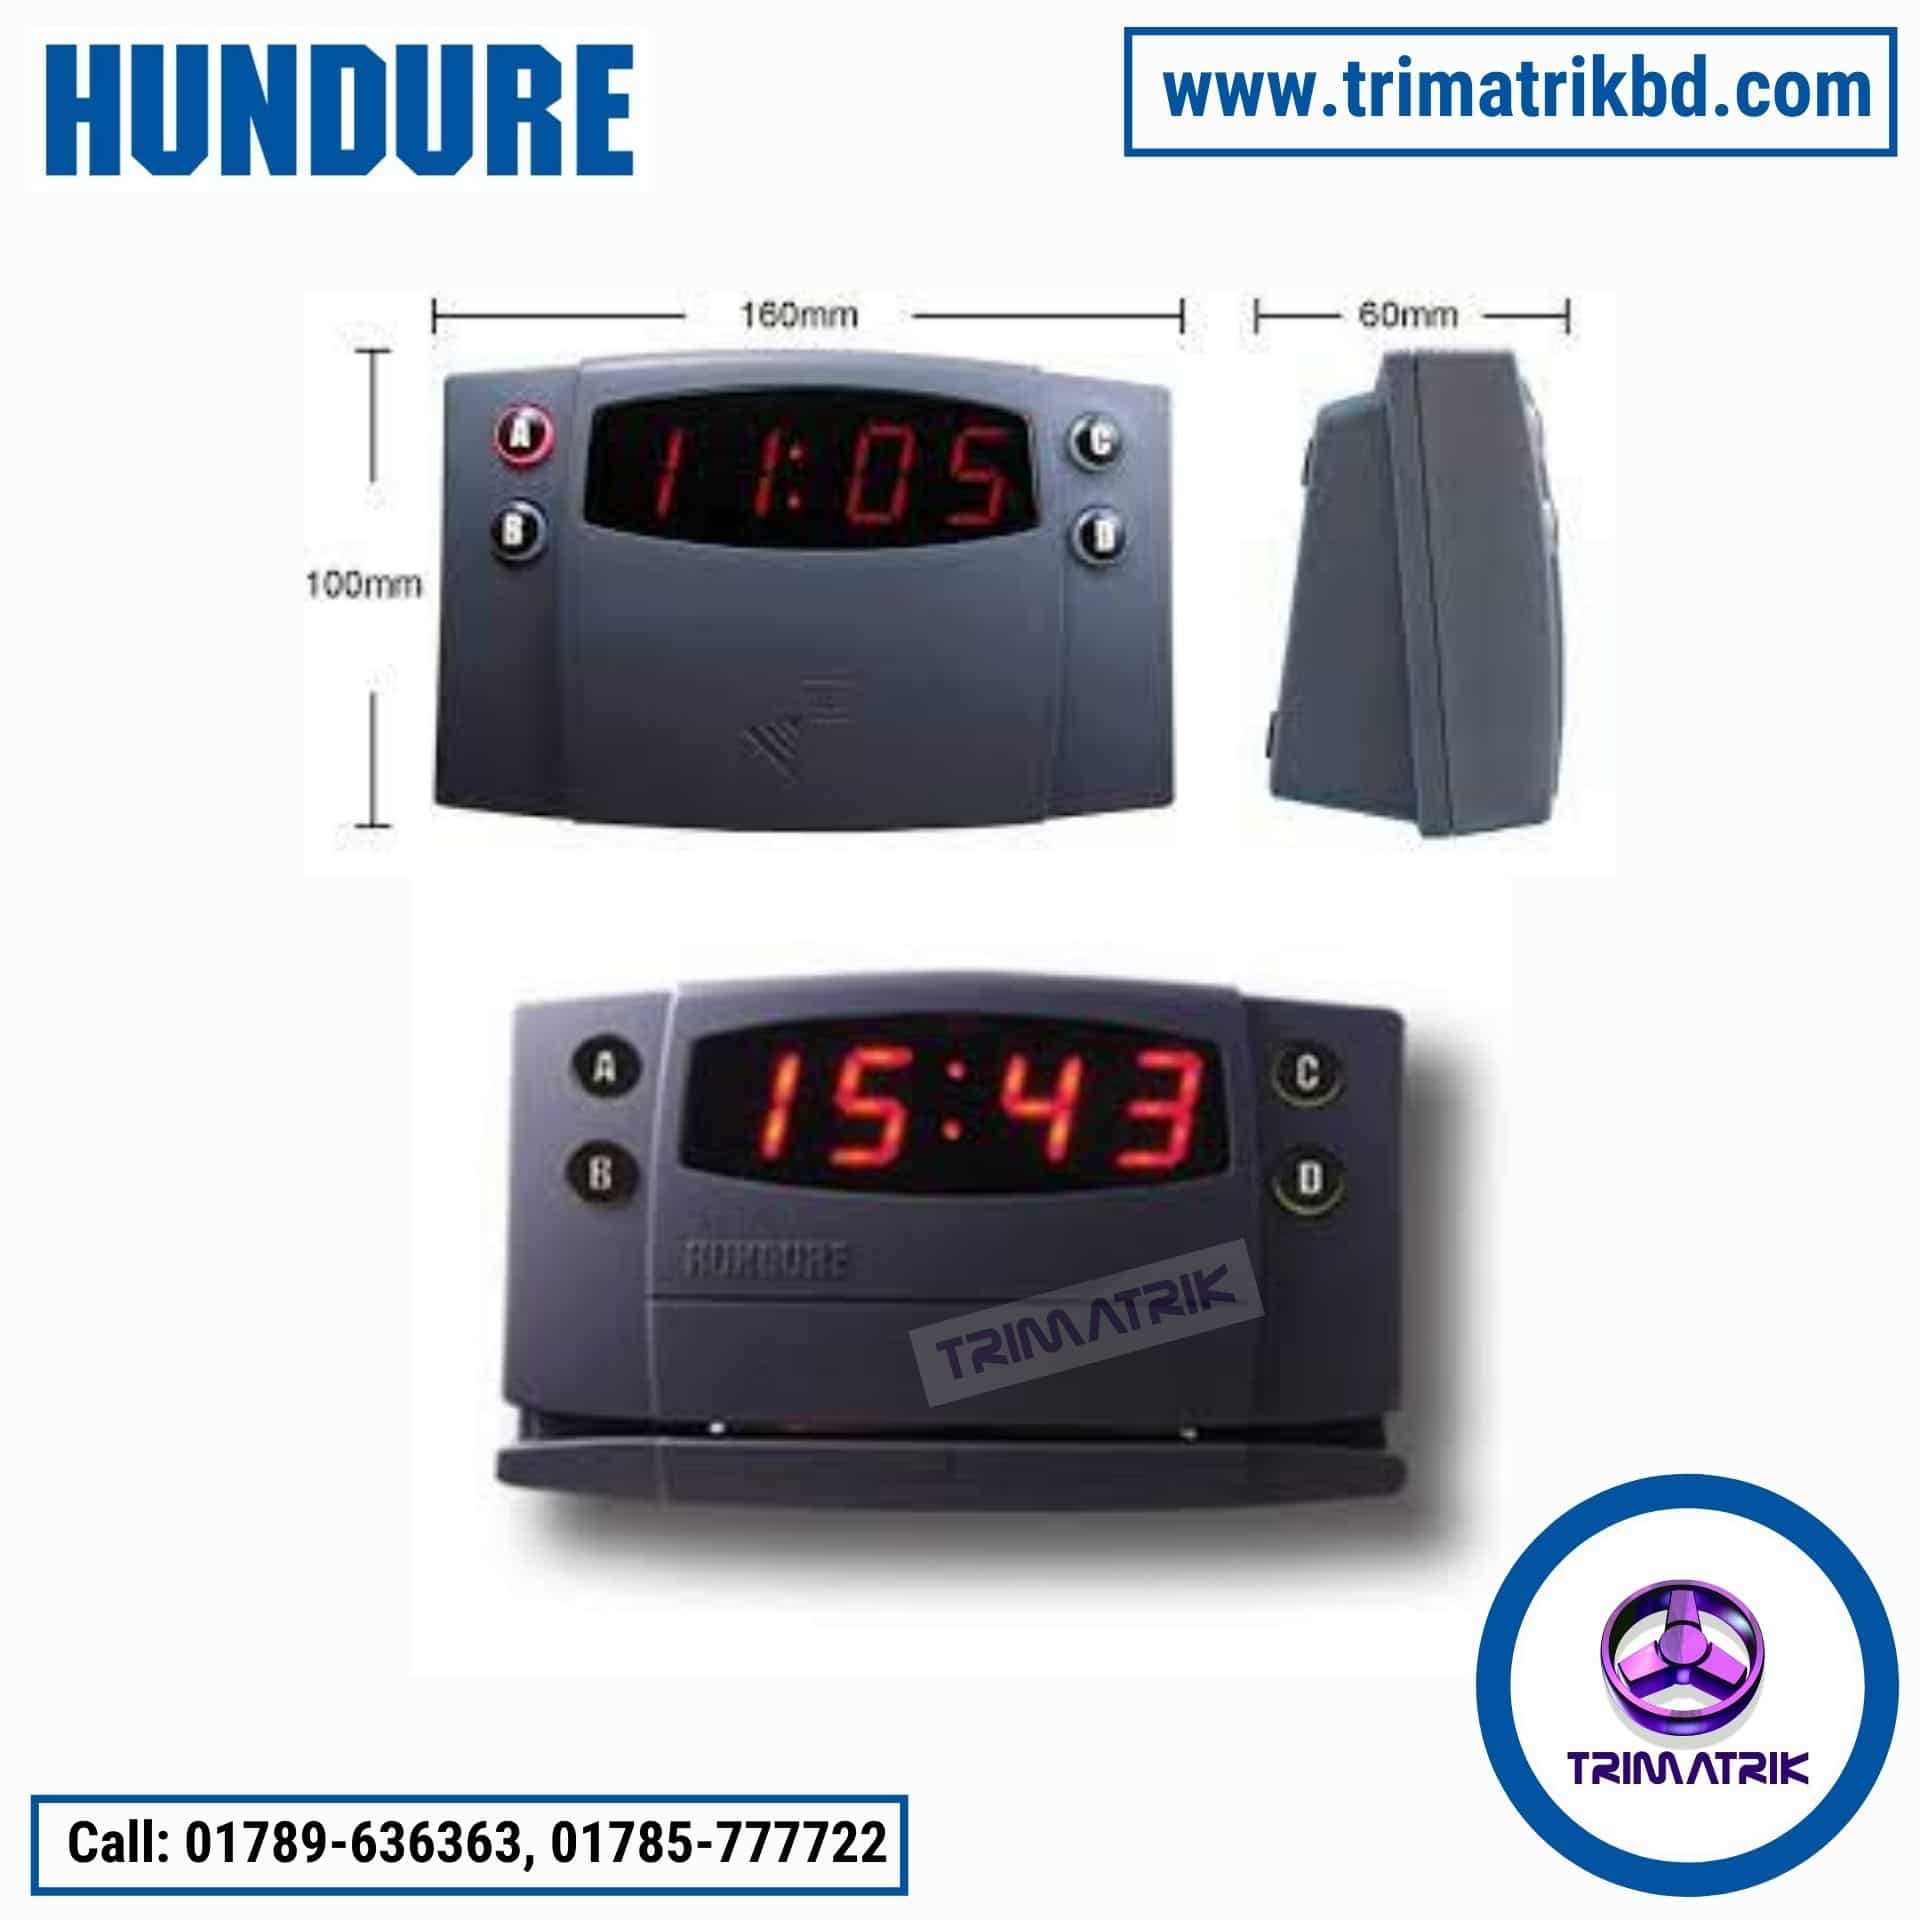 Answer: The Hundure HTA-830 price in Bangladesh is 12,500 Taka with 1 year warranty. This price includes HTA-830 installation and aftersell service.